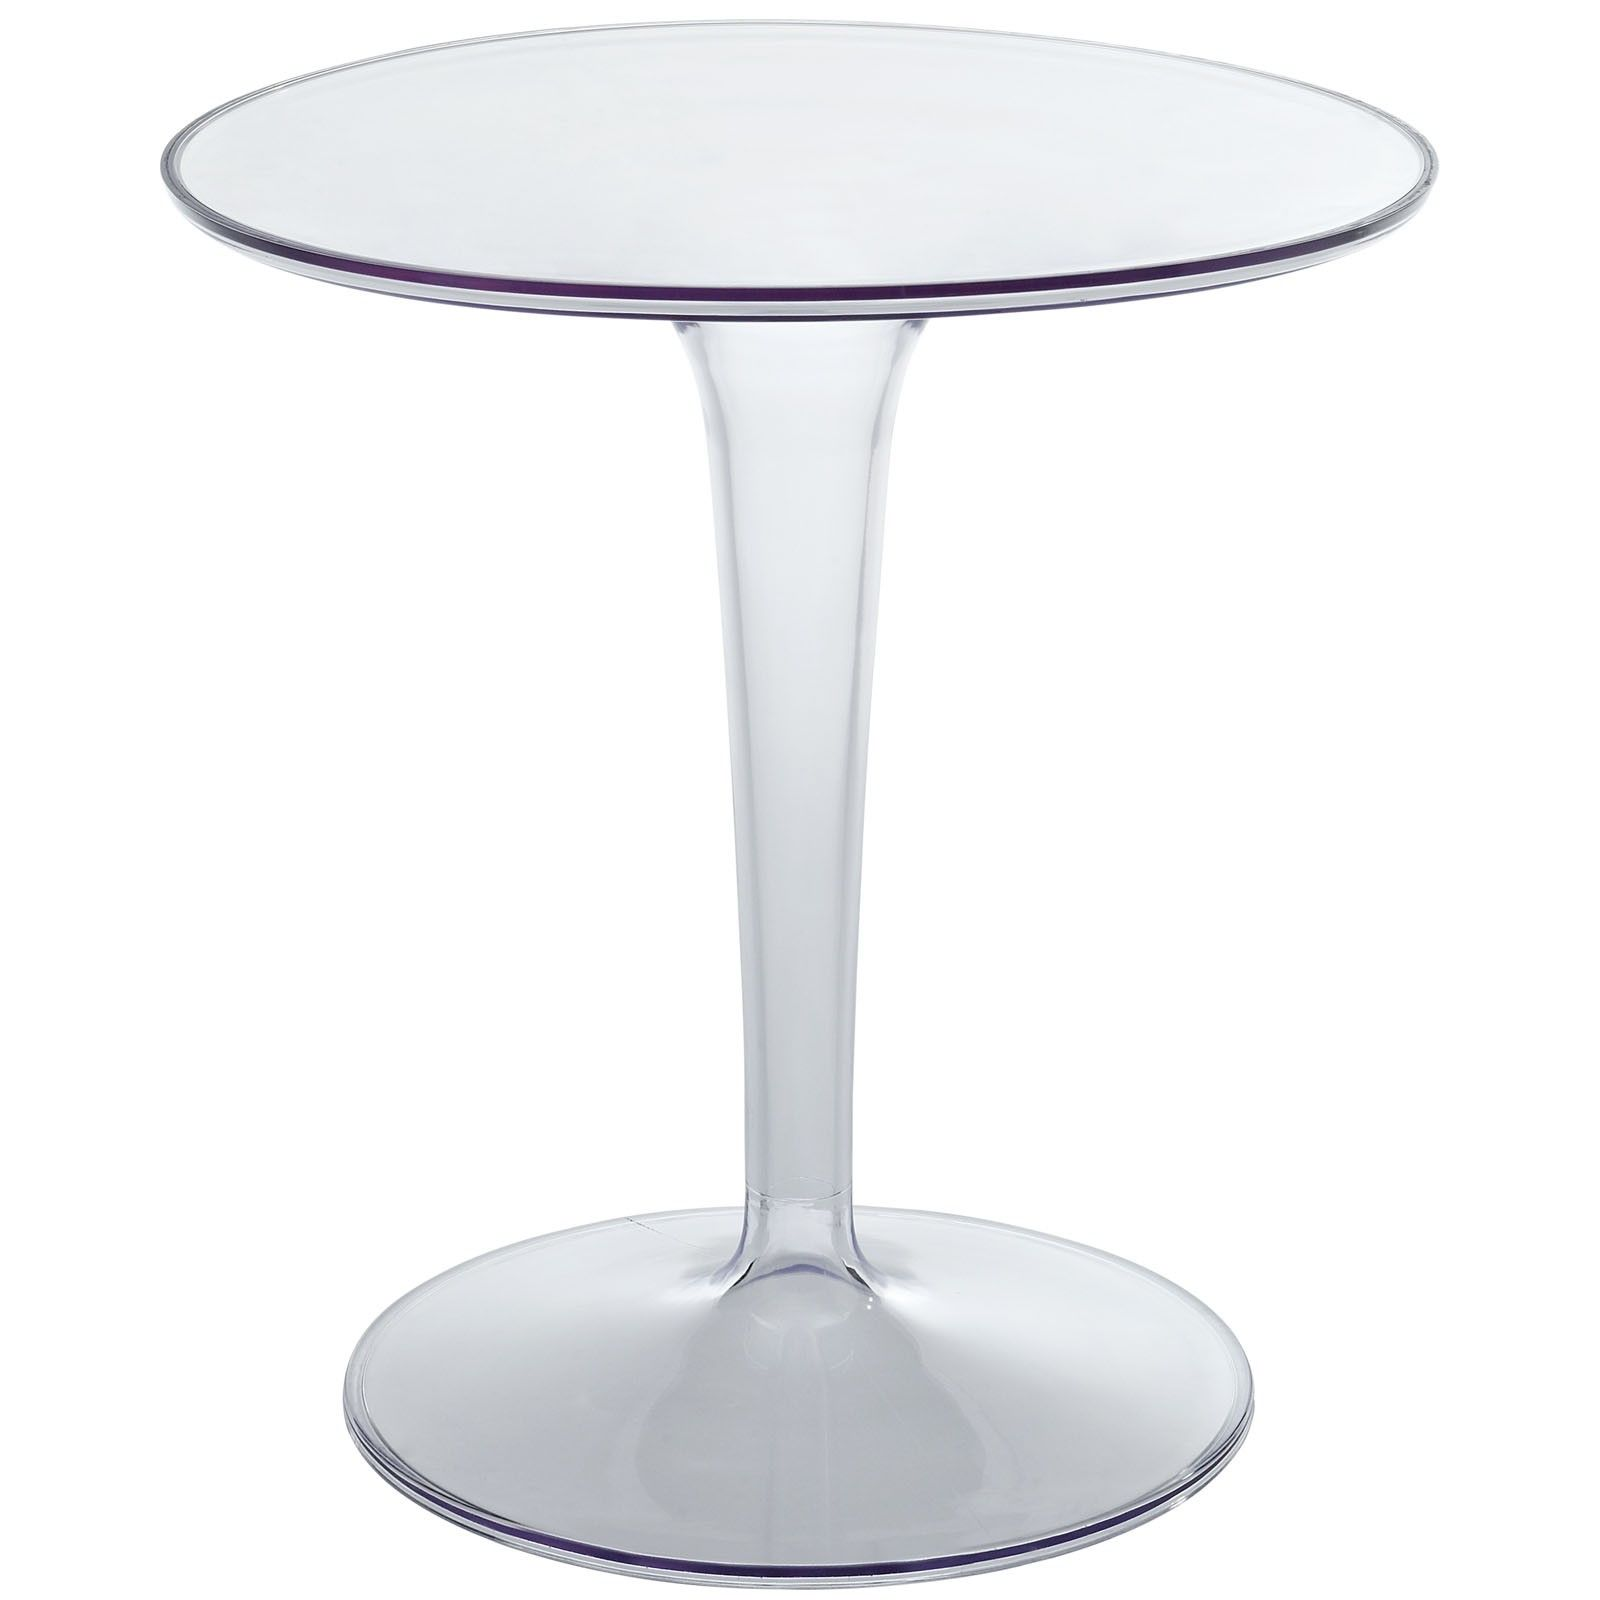 Modern Round Clear Acrylic Side Table Argo Is Perfect For A Casual Supper  Or Classy Dinner. It Is A Transparent Color And Round Shaped Furnishing.  The Slick ...